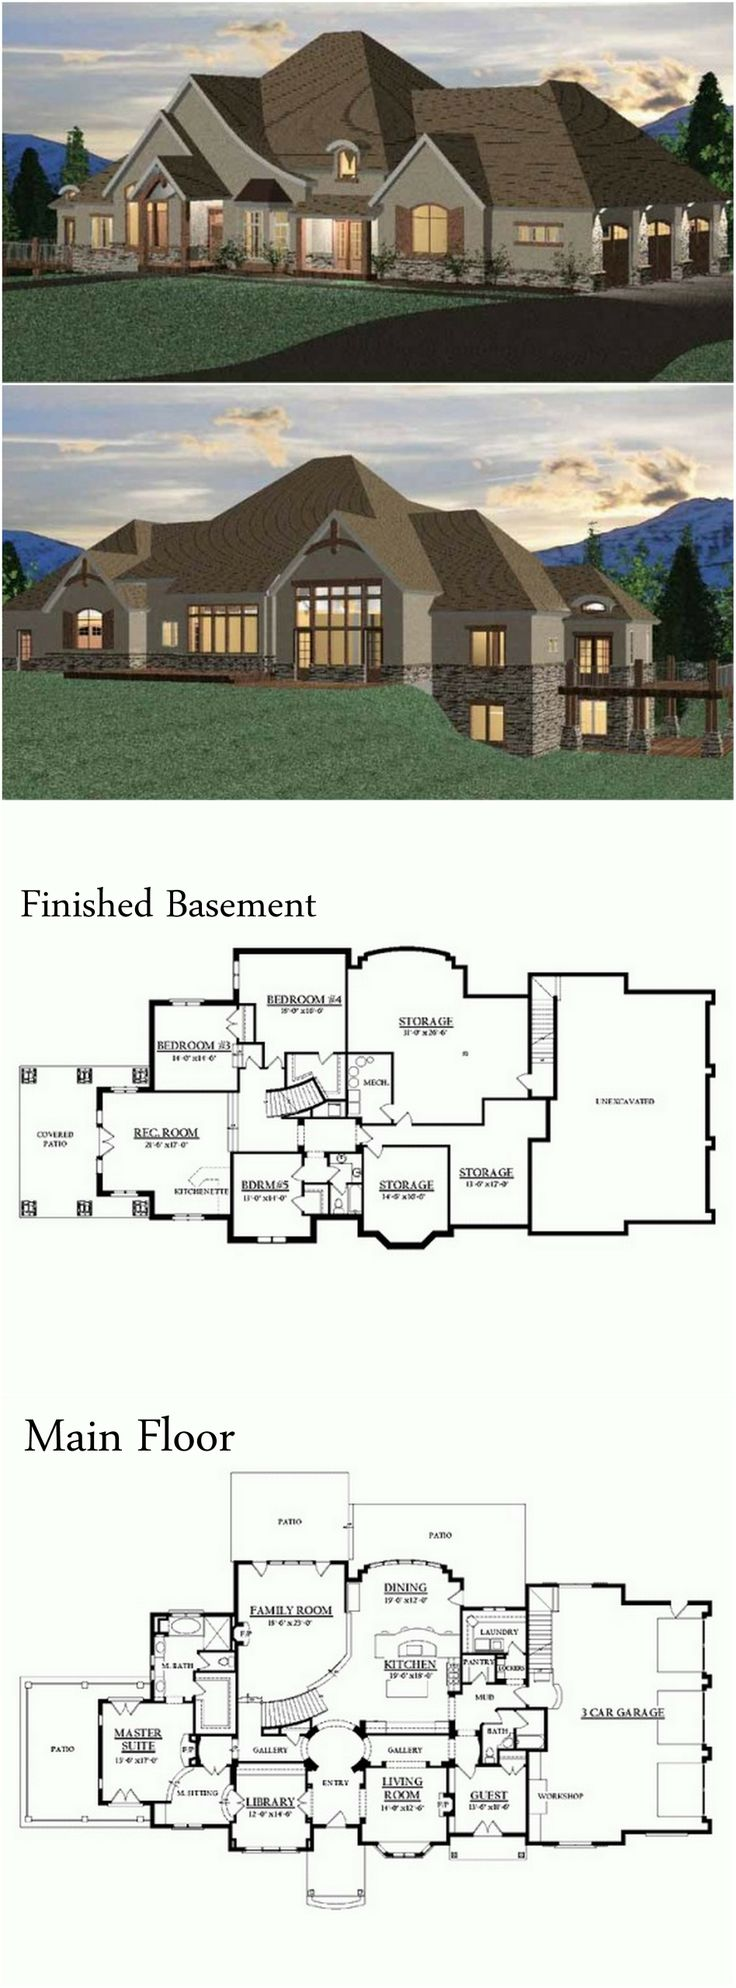 276 best home in my dreams images on pinterest house floor plans 276 best home in my dreams images on pinterest house floor plans architecture and dream house plans